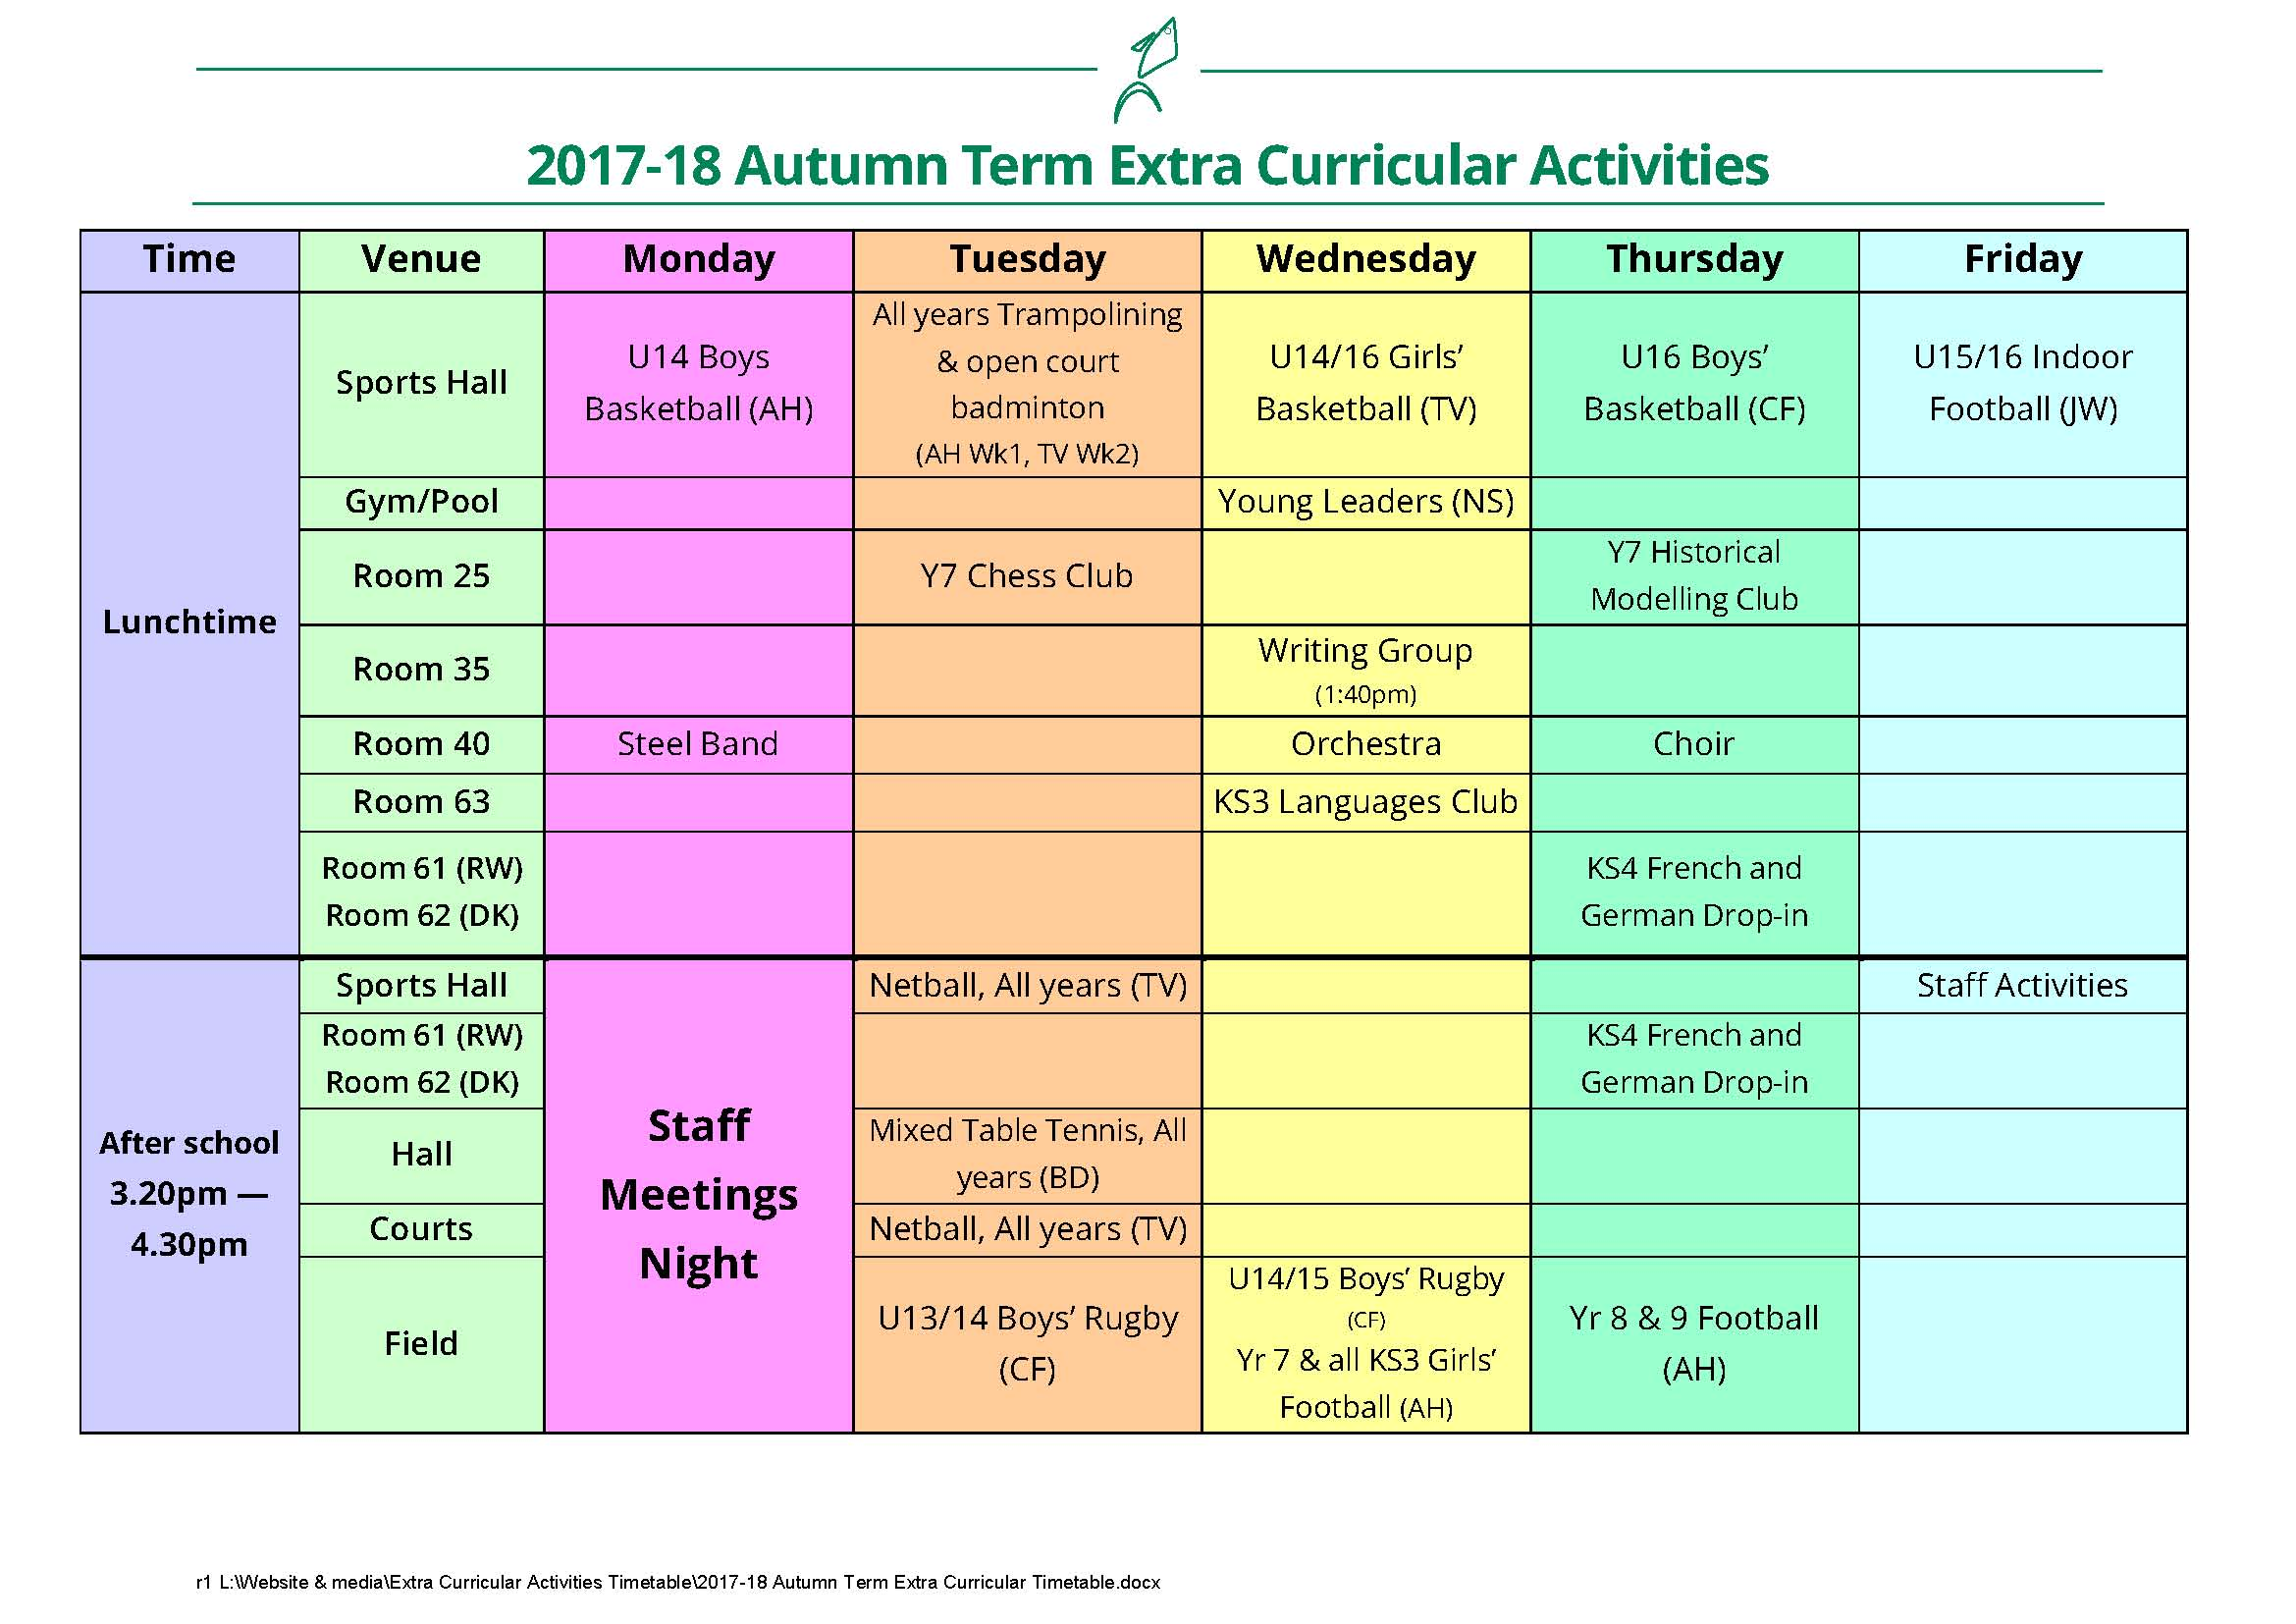 Extra Curricular Activites Timetable